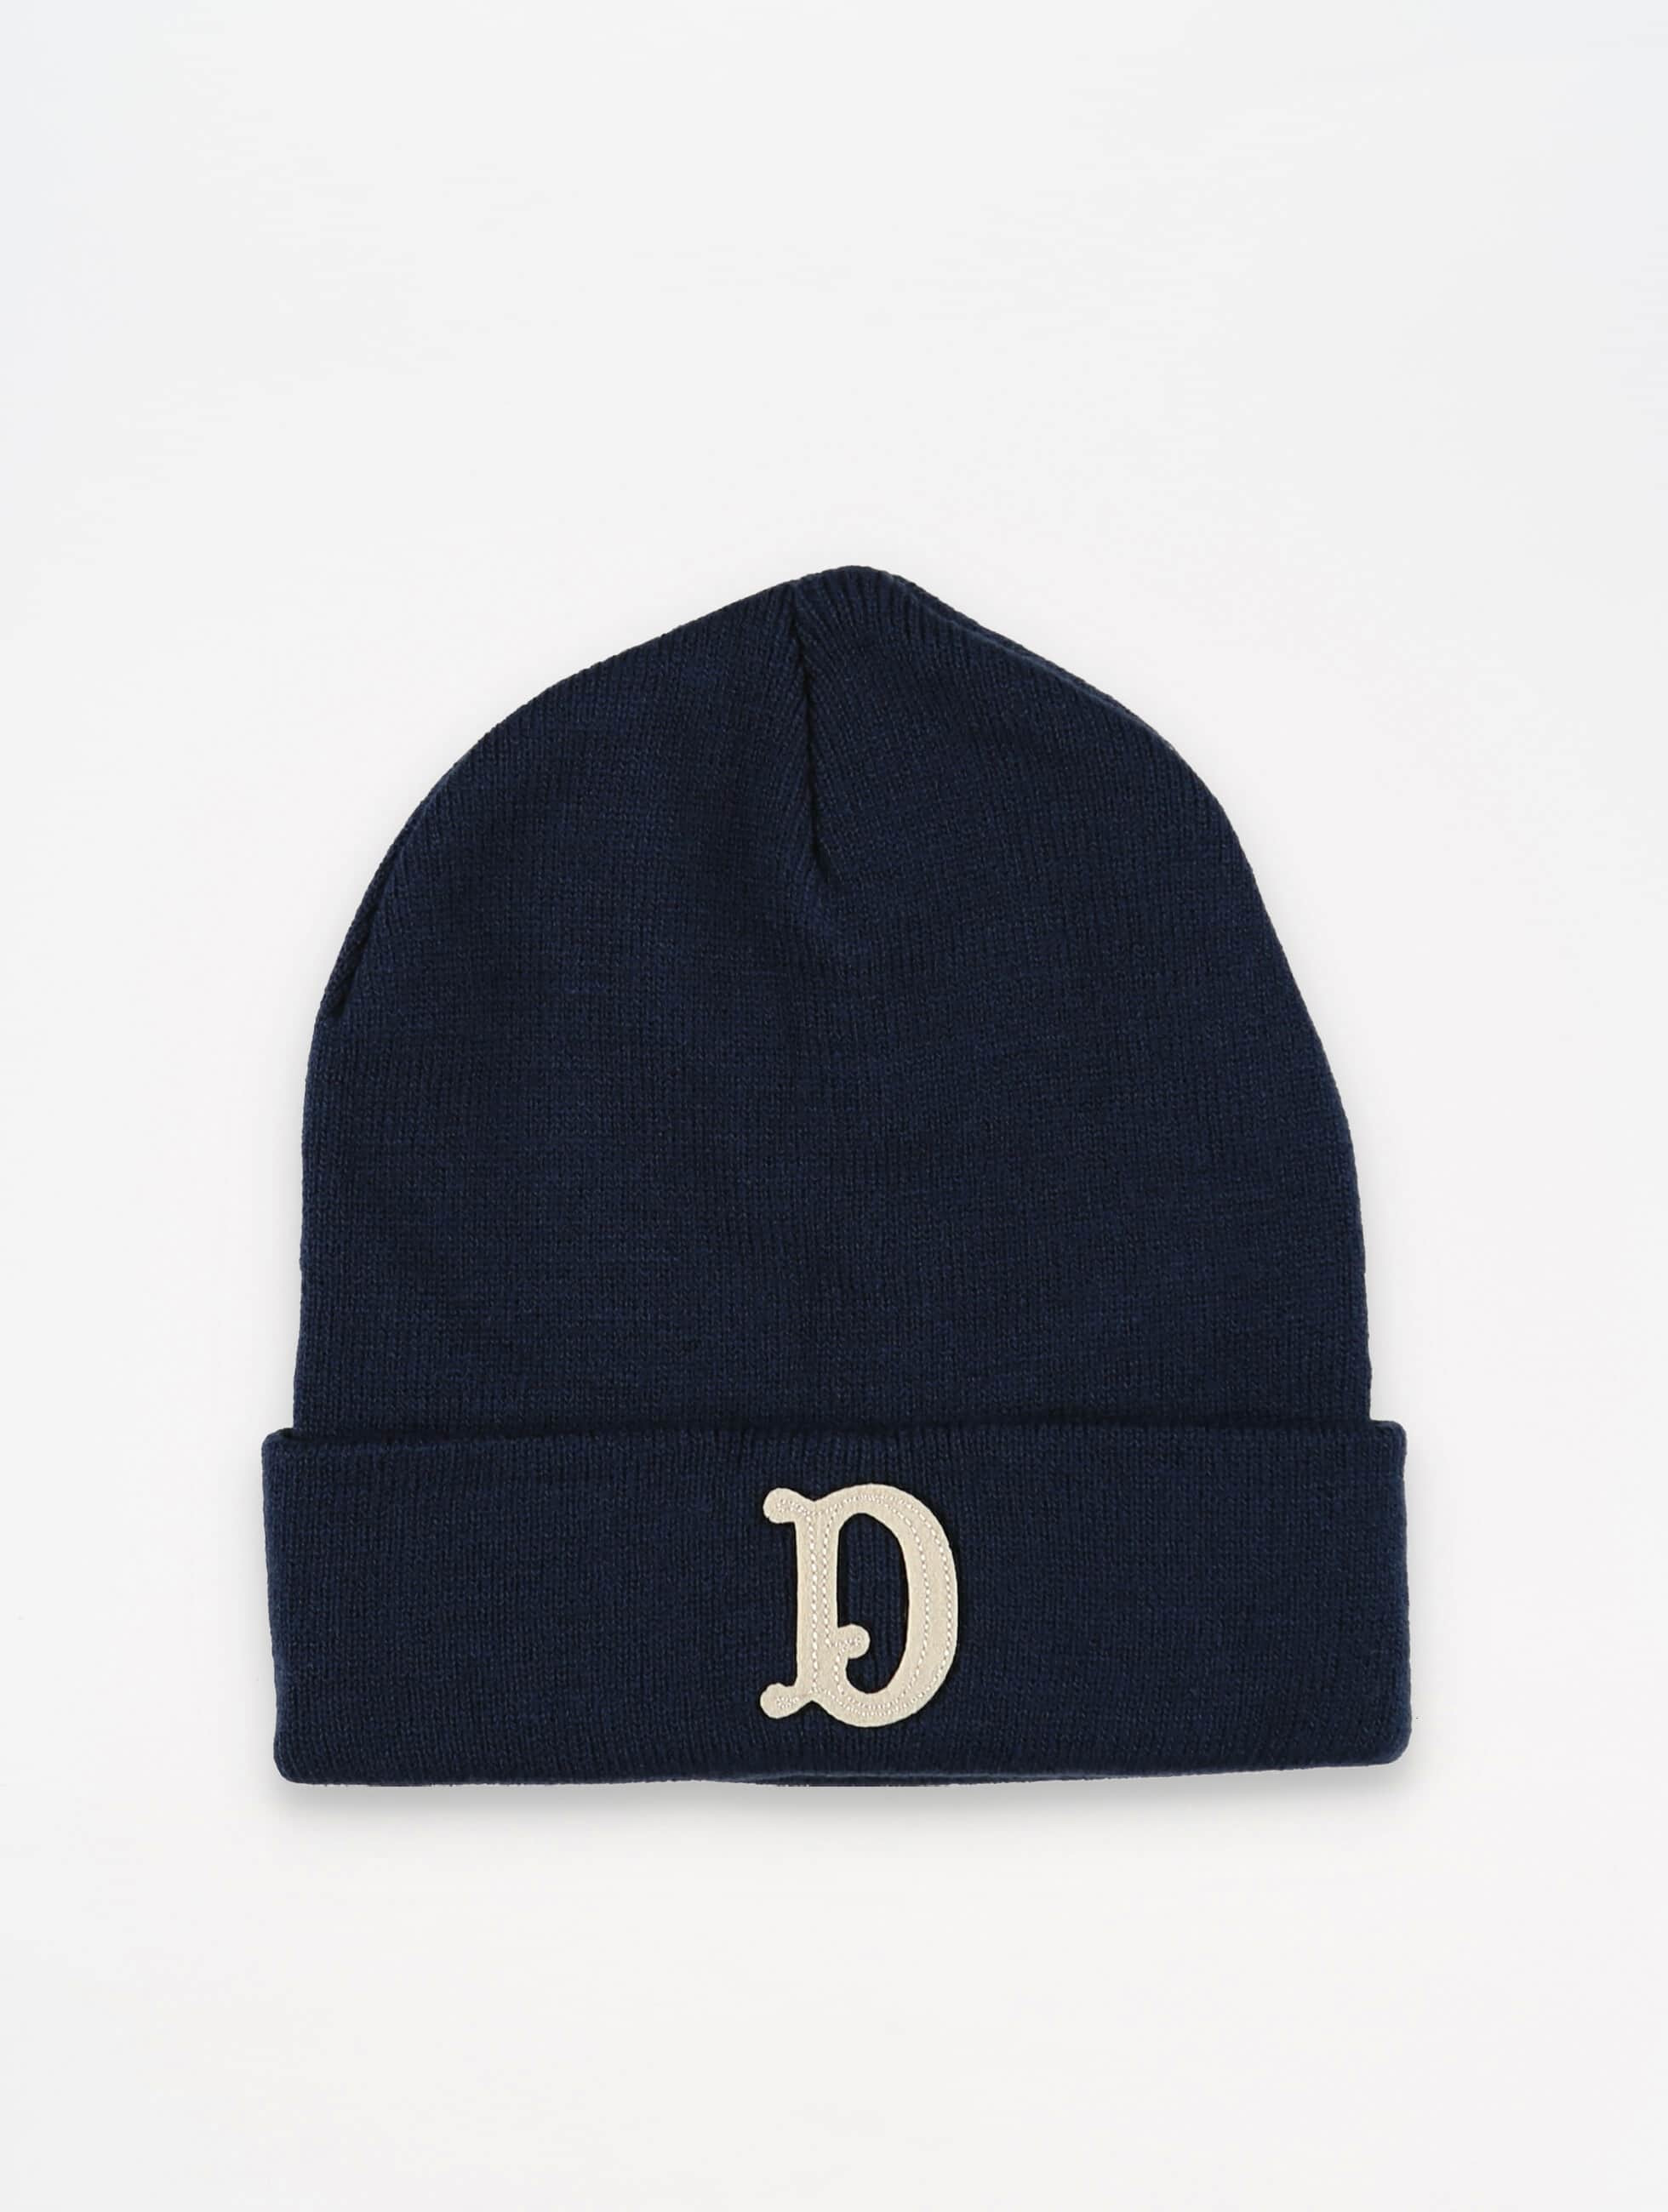 The Dudes | D Patch bleu Homme,Femme Bonnet